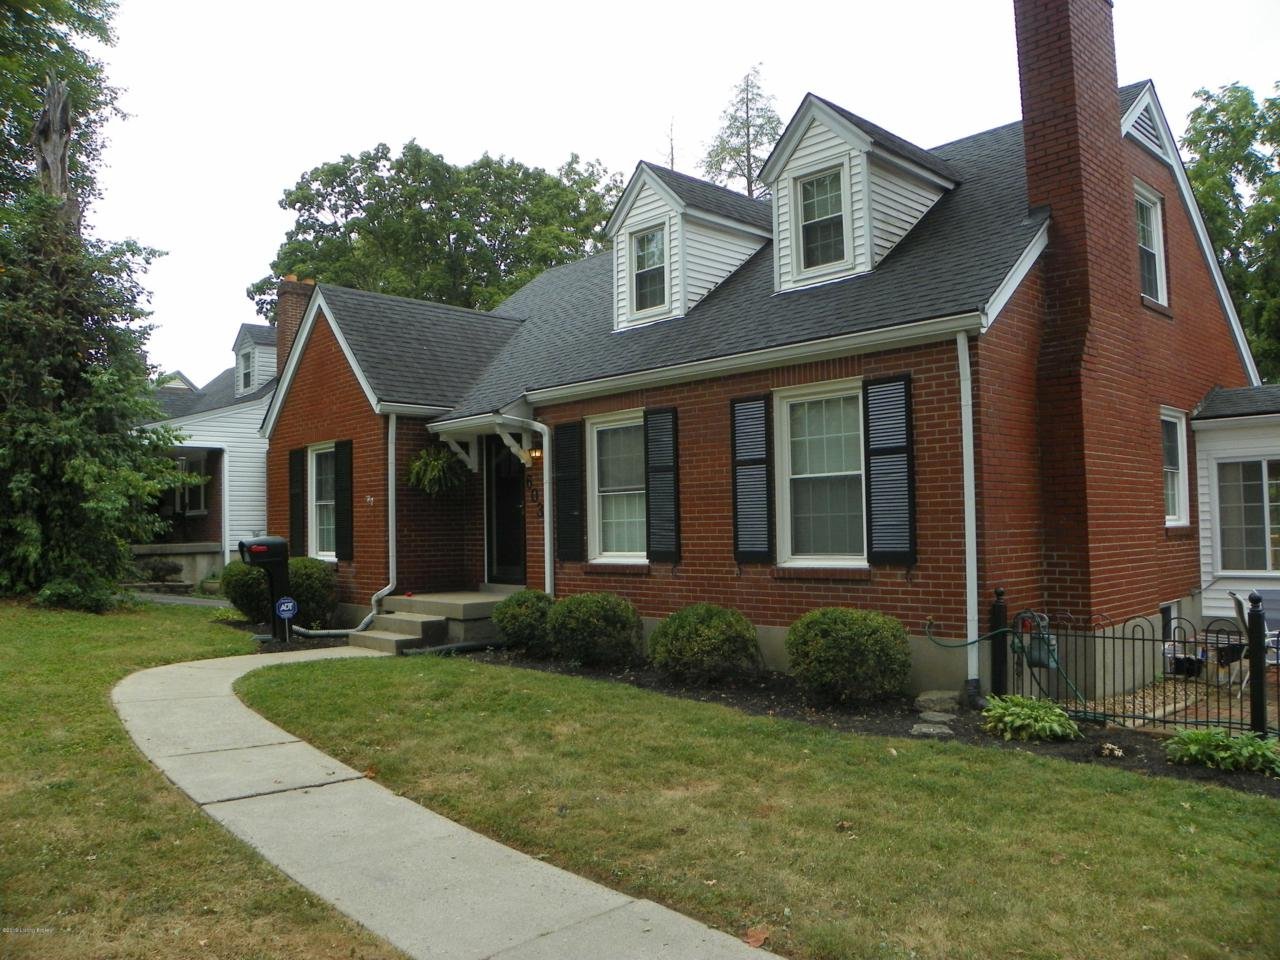 603 Orchard Hill Dr - Photo 1